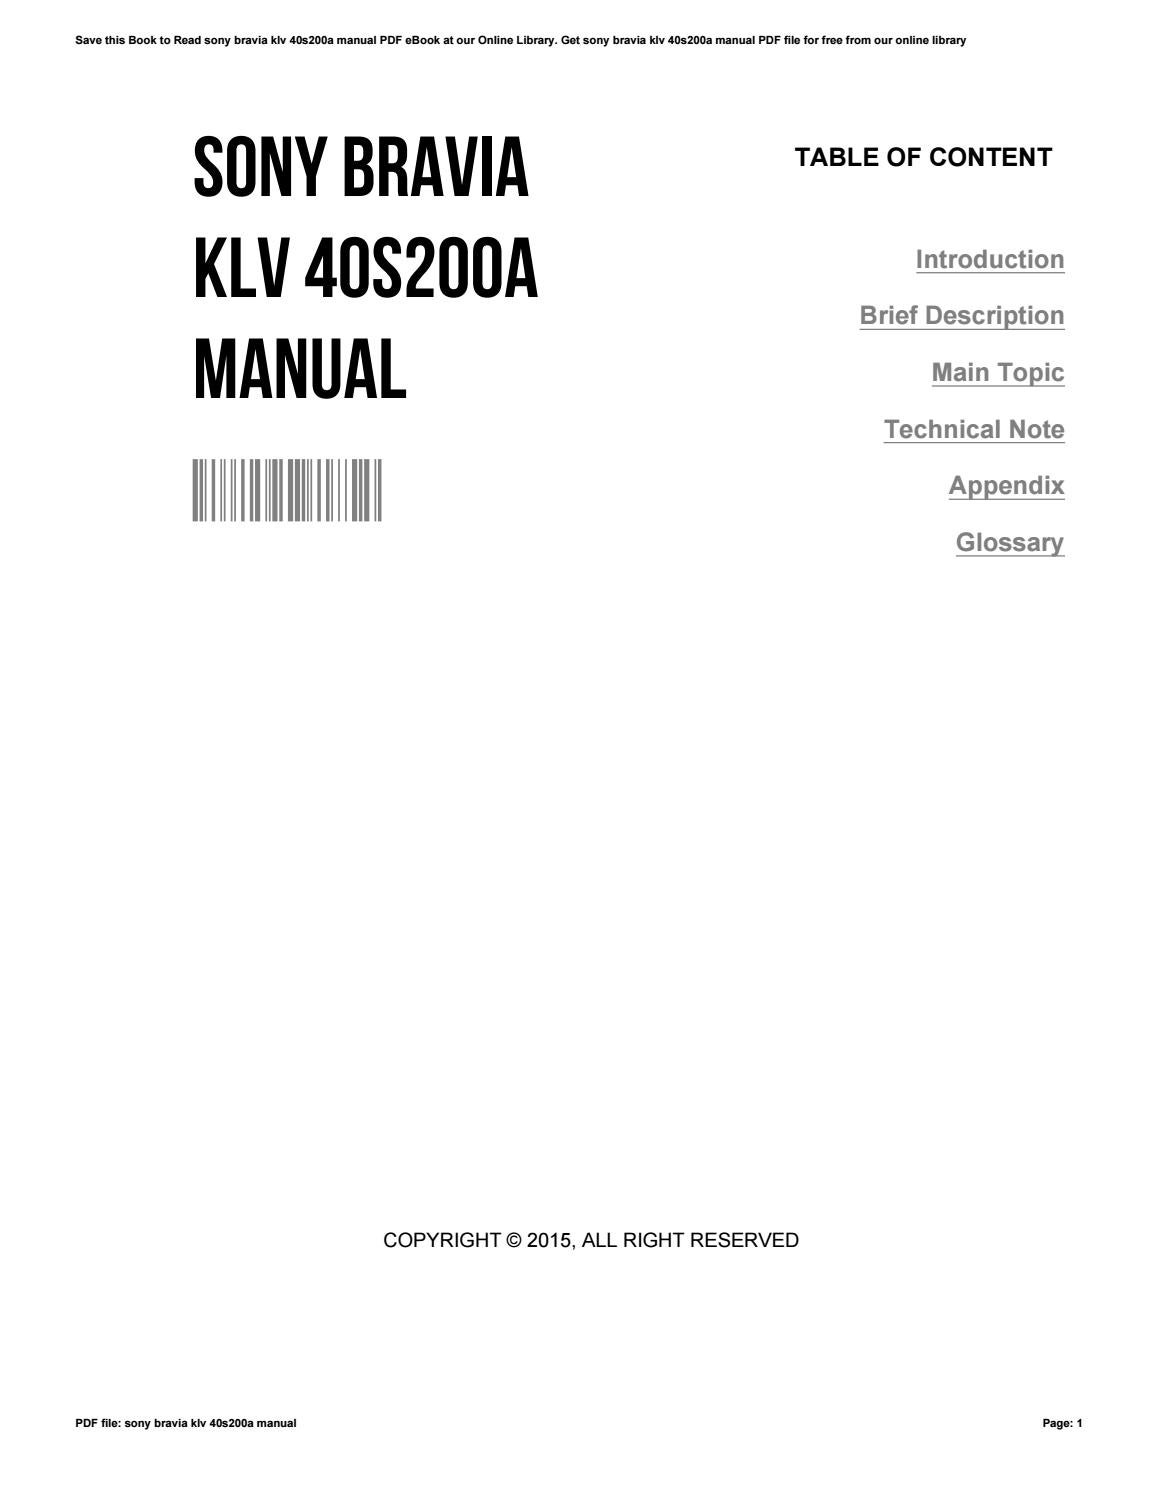 Sony Tv Manuals Online 2015 Ford Escape Wiring Cdc35 Array Bravia Klv 40s200a Manual By Patriciakelly2273 Issuu Rh